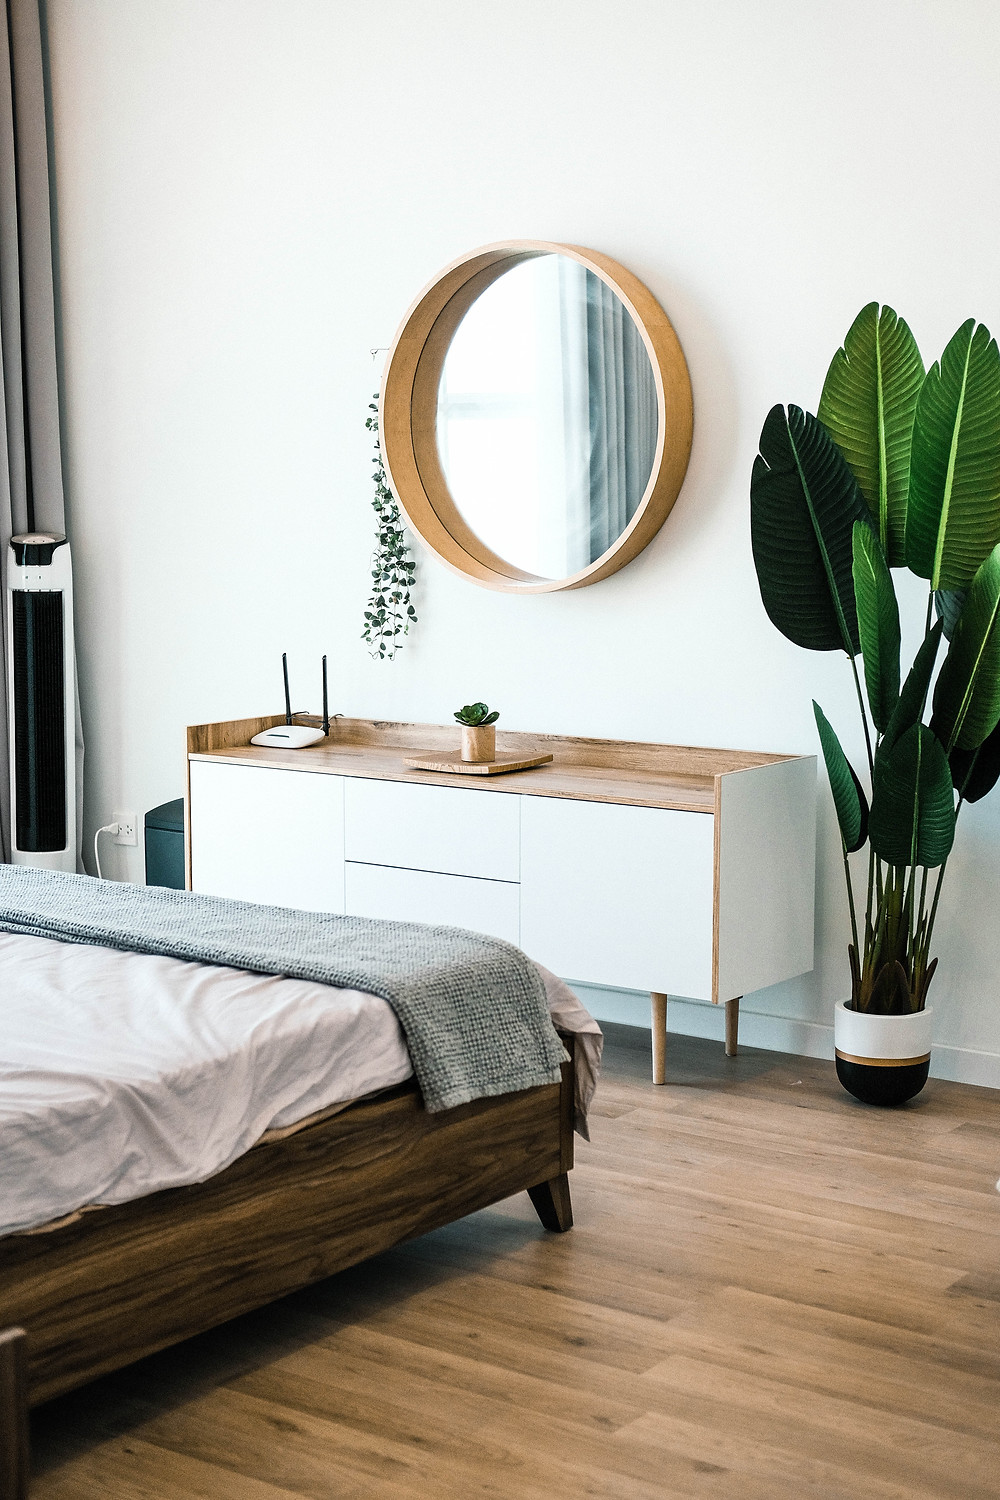 Turn Your Bedroom Into An Oasis Without Spending A Ton